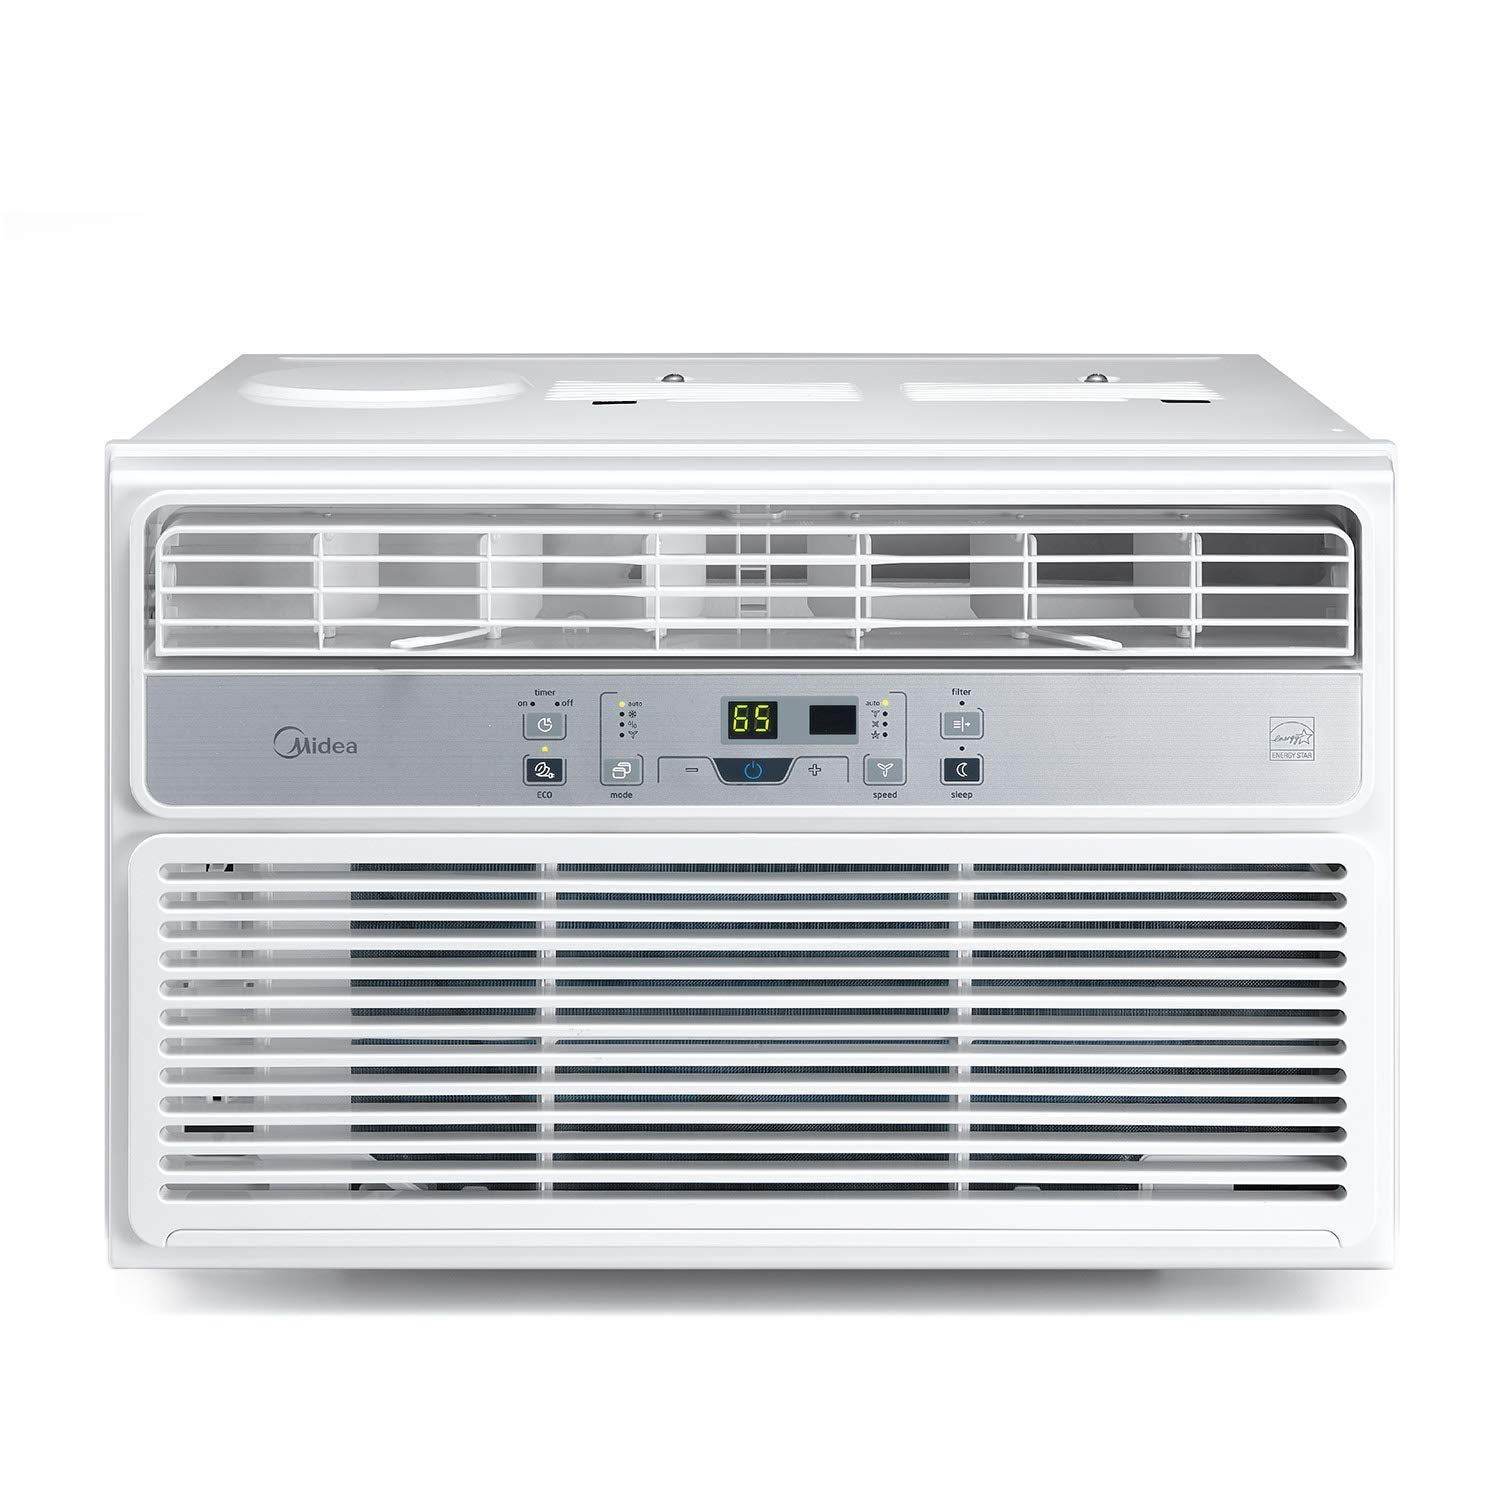 MIDEA MAW12R1BWT Window Air Conditioner 12000 BTU Easycool AC (Cooling, Dehumidifier and Fan Functions) for Rooms up to 550 Sq, ft. with Remote Control, 12,000, White